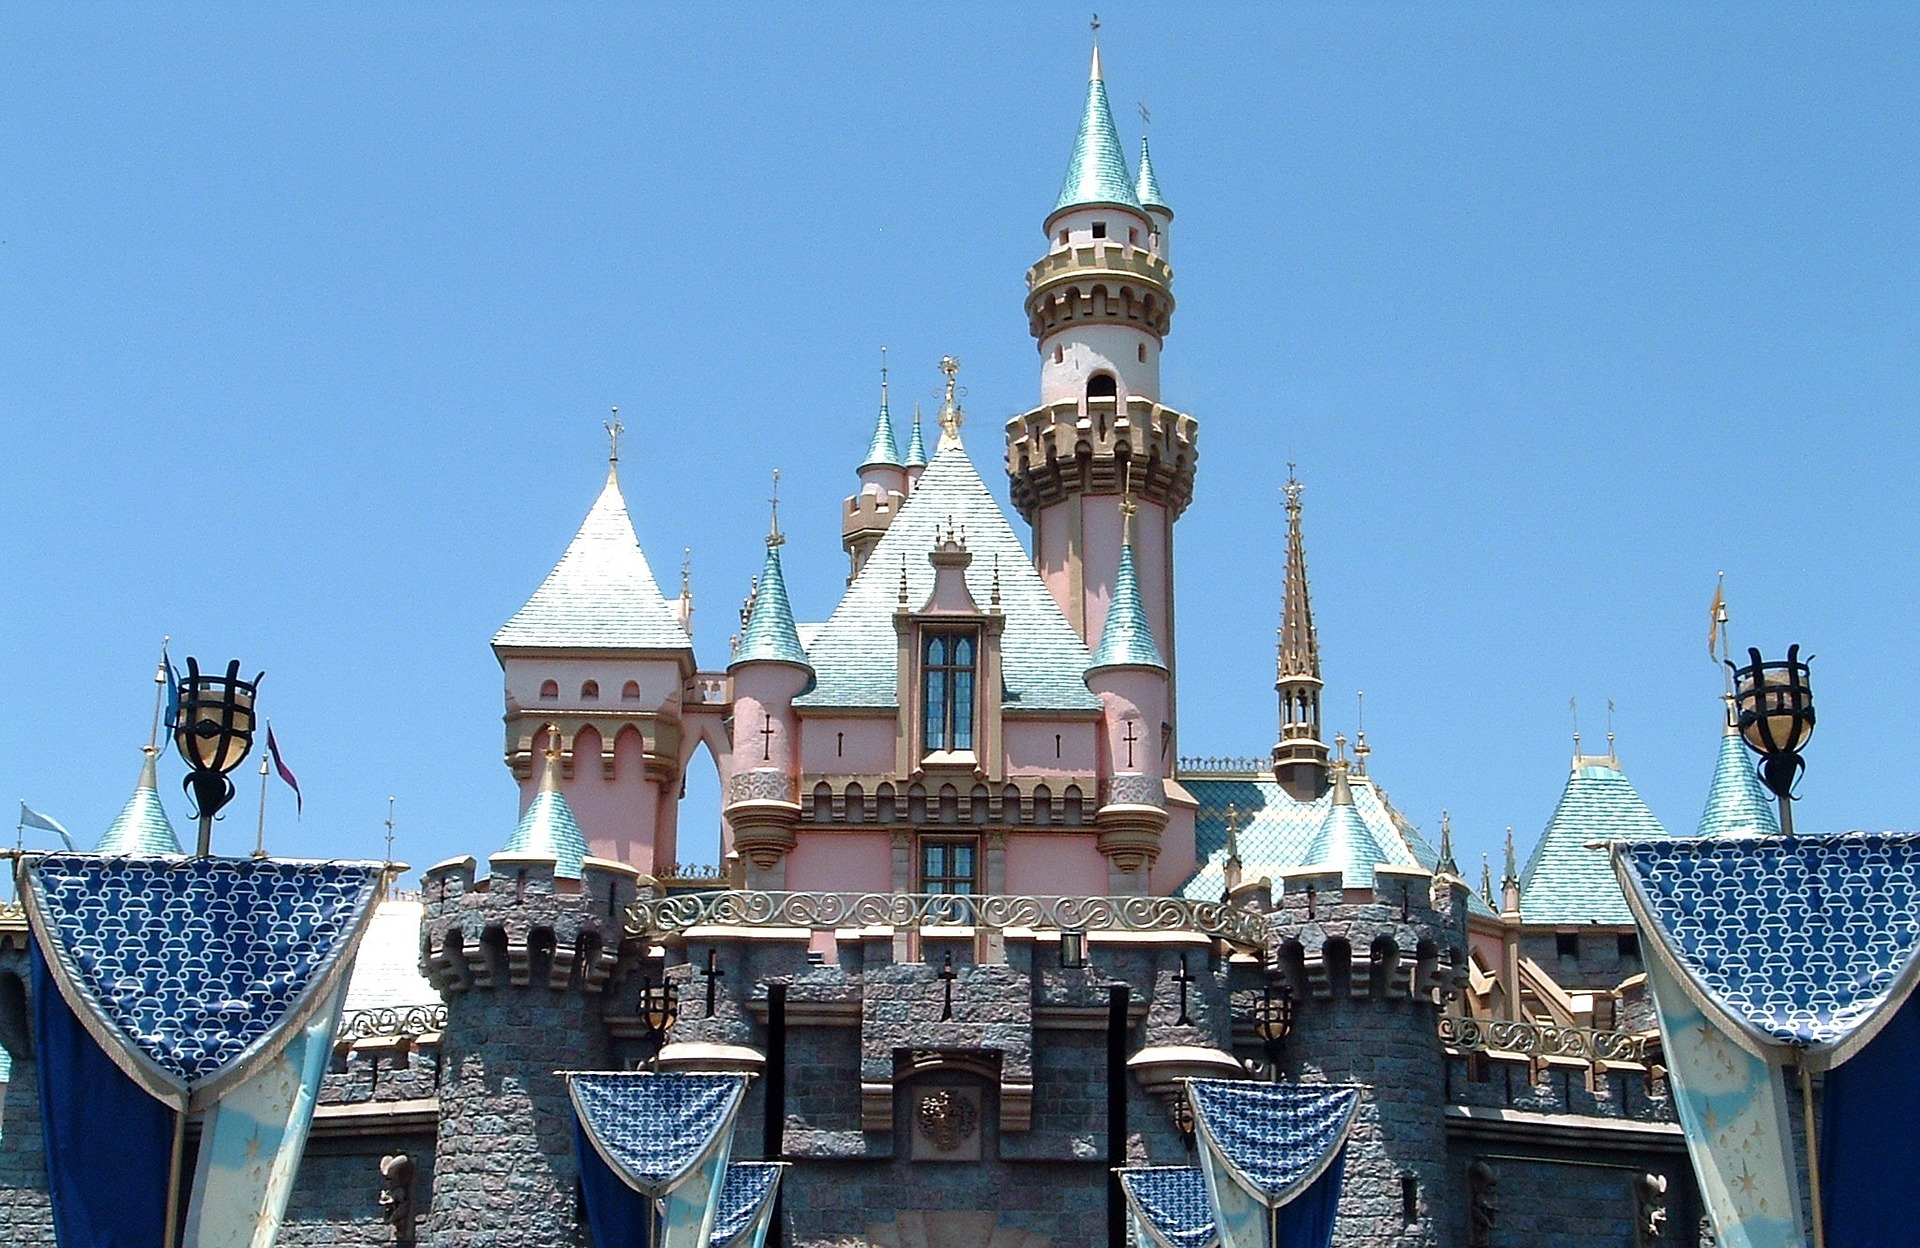 castle-of-the-sleeping-beauty-Disneyland